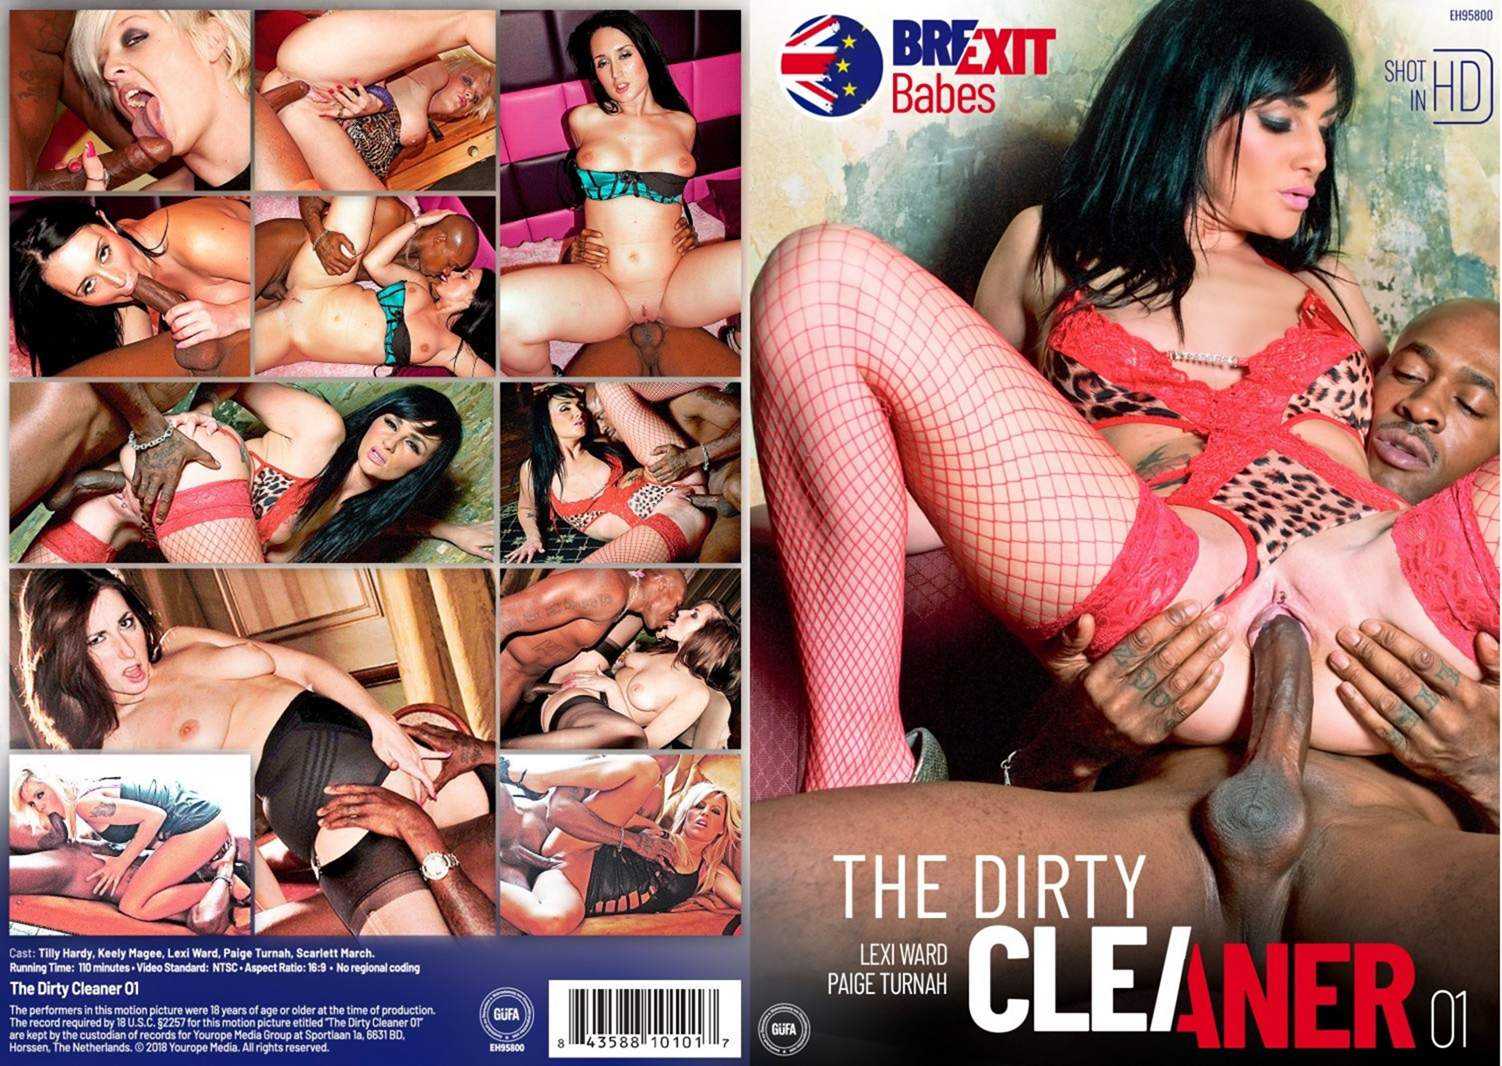 The Dirty Cleaner